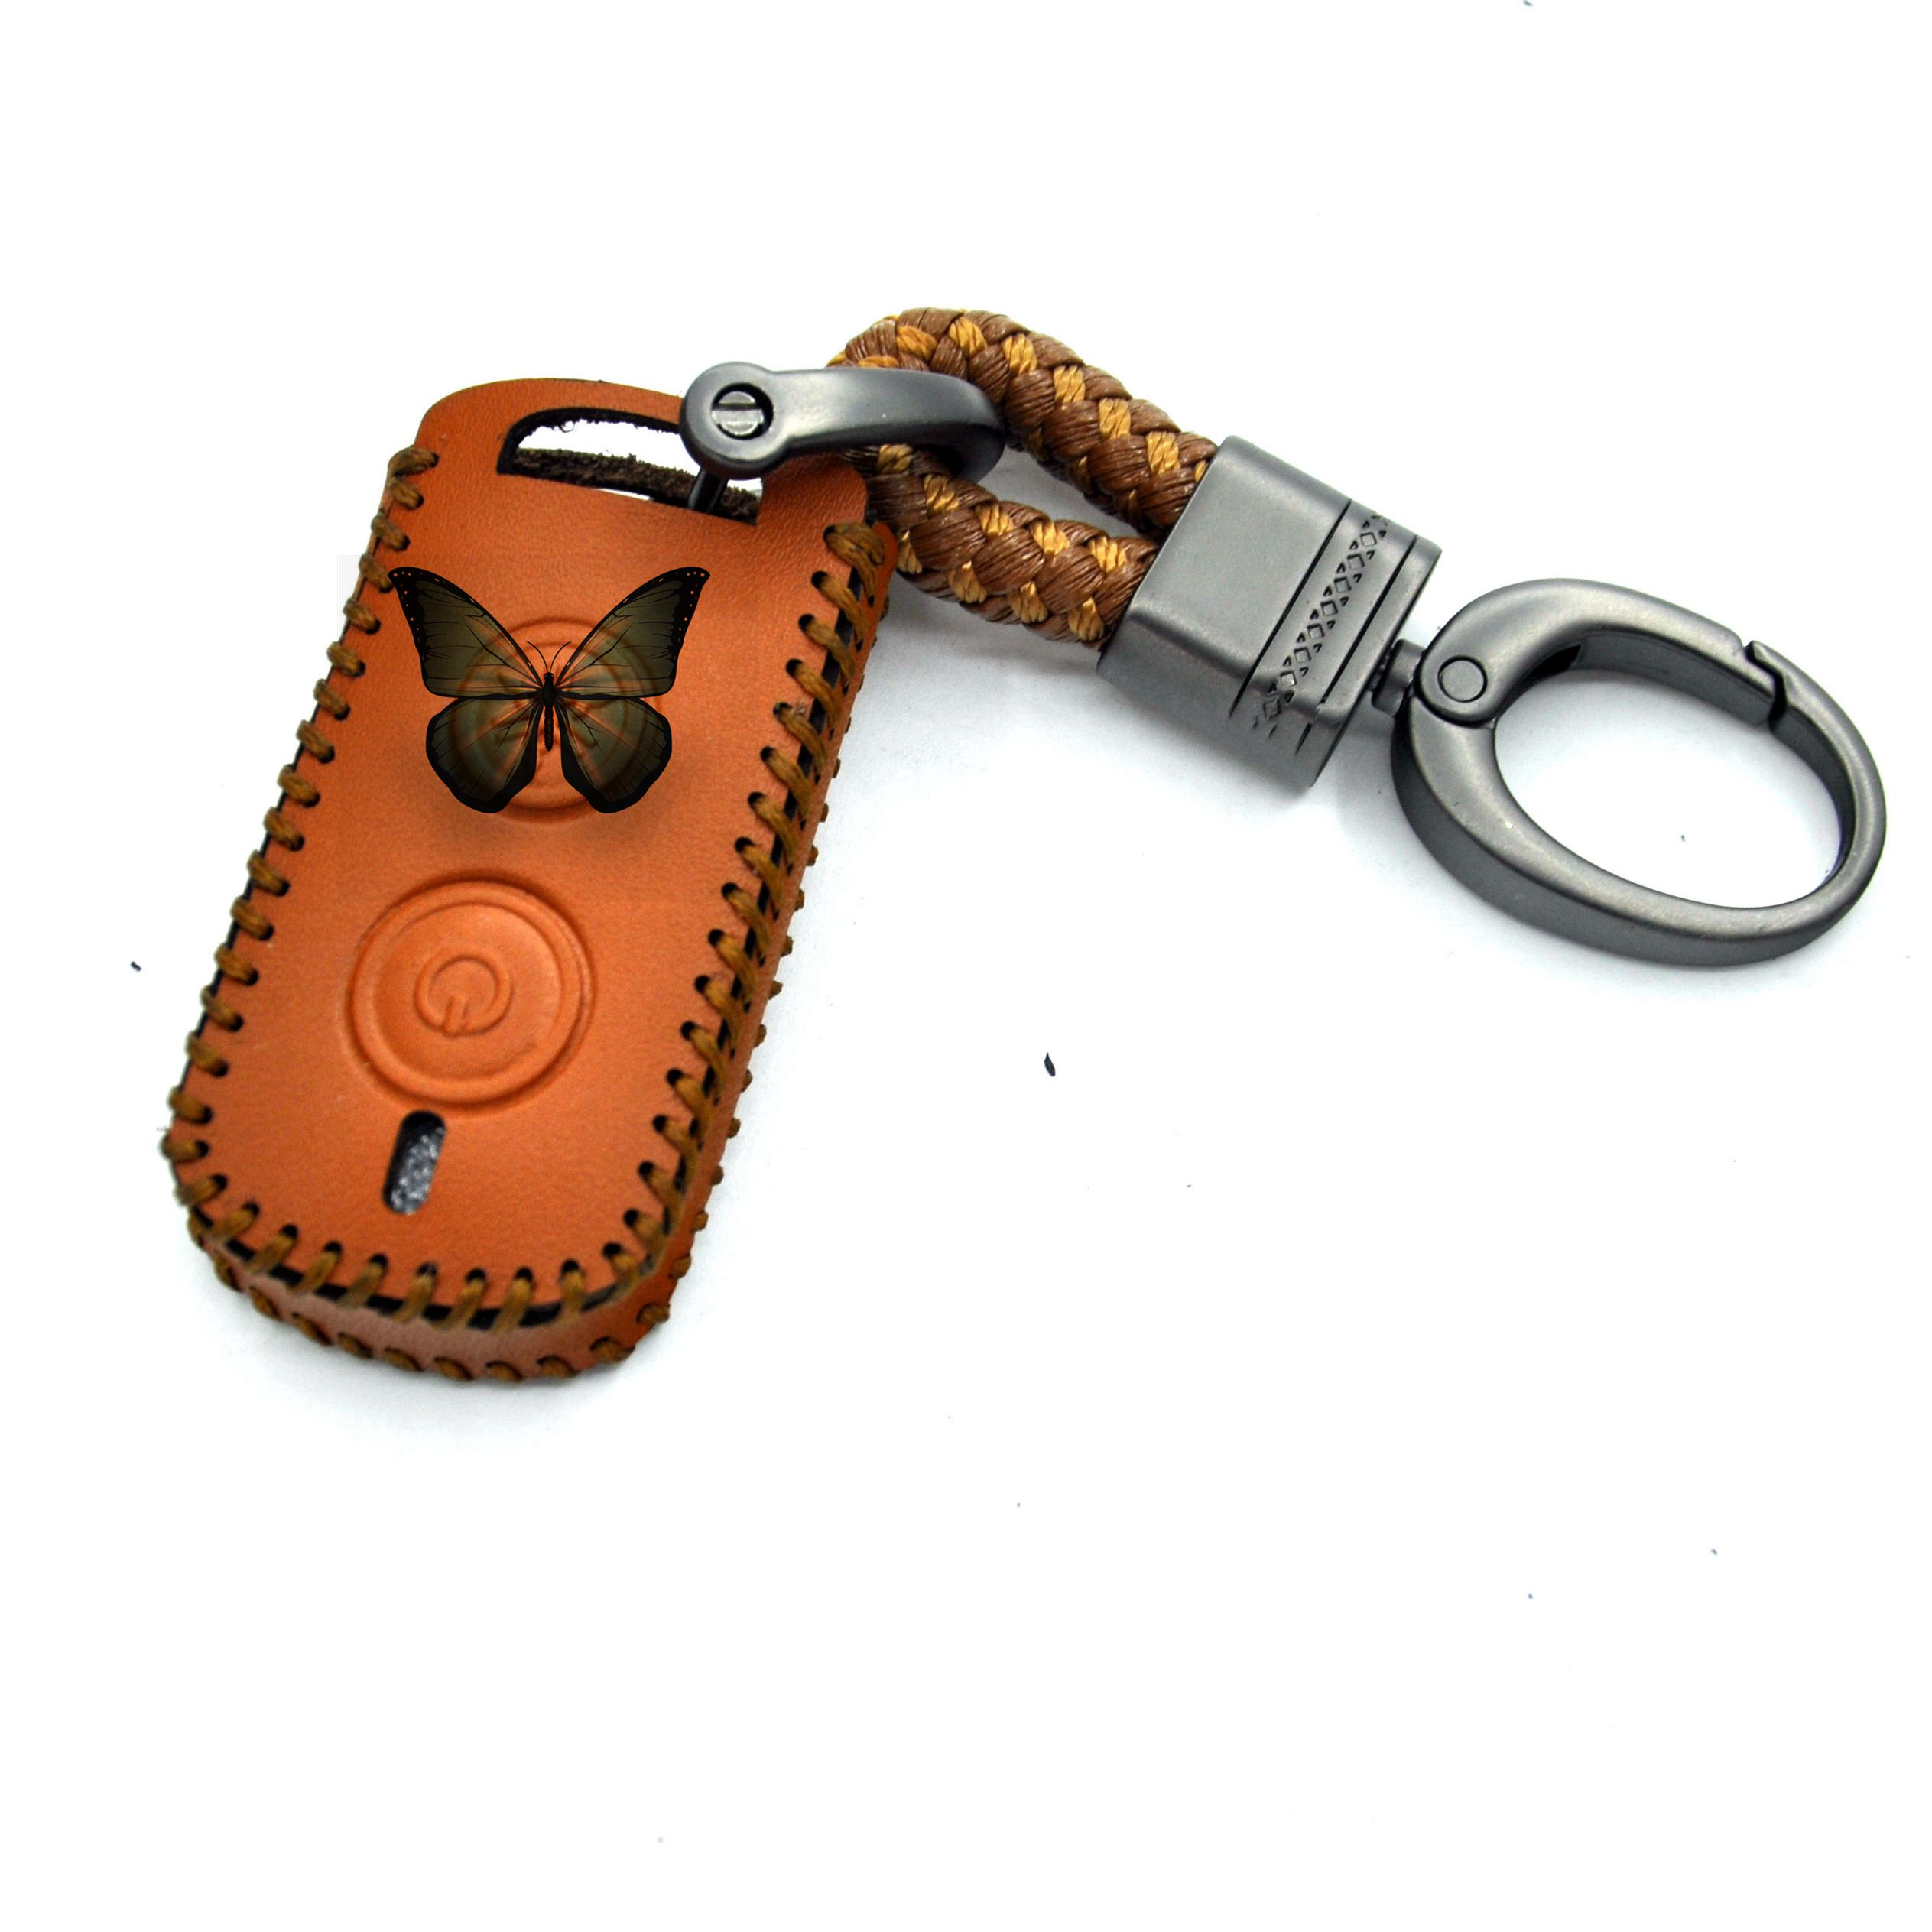 2019 hot sale wholesale car key fob for Yamaha NVX155 QBIX JAUNS XMAX300 Motorcycle Protector Keychain Cover Wholesale(MH102